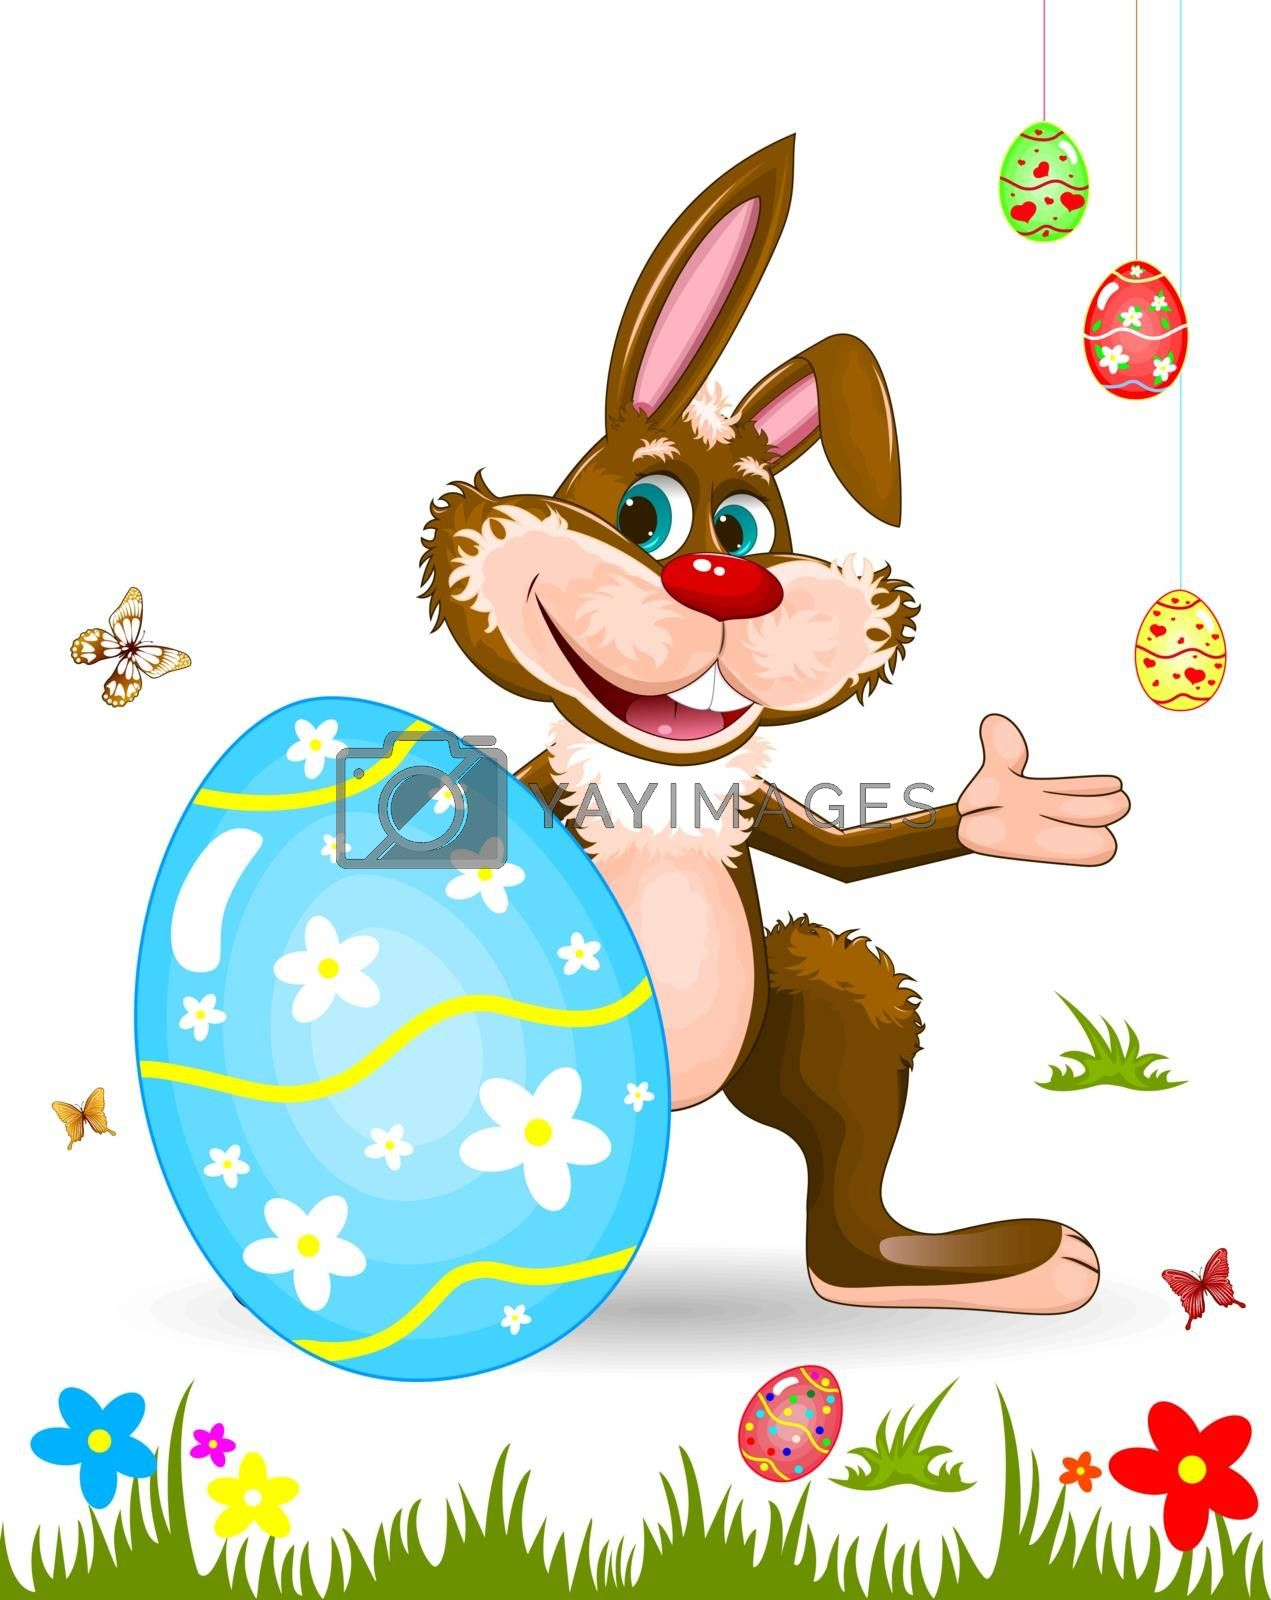 Cartoon easter bunny. Easter eggs, butterflies, flowers, grass. Character for greeting card.